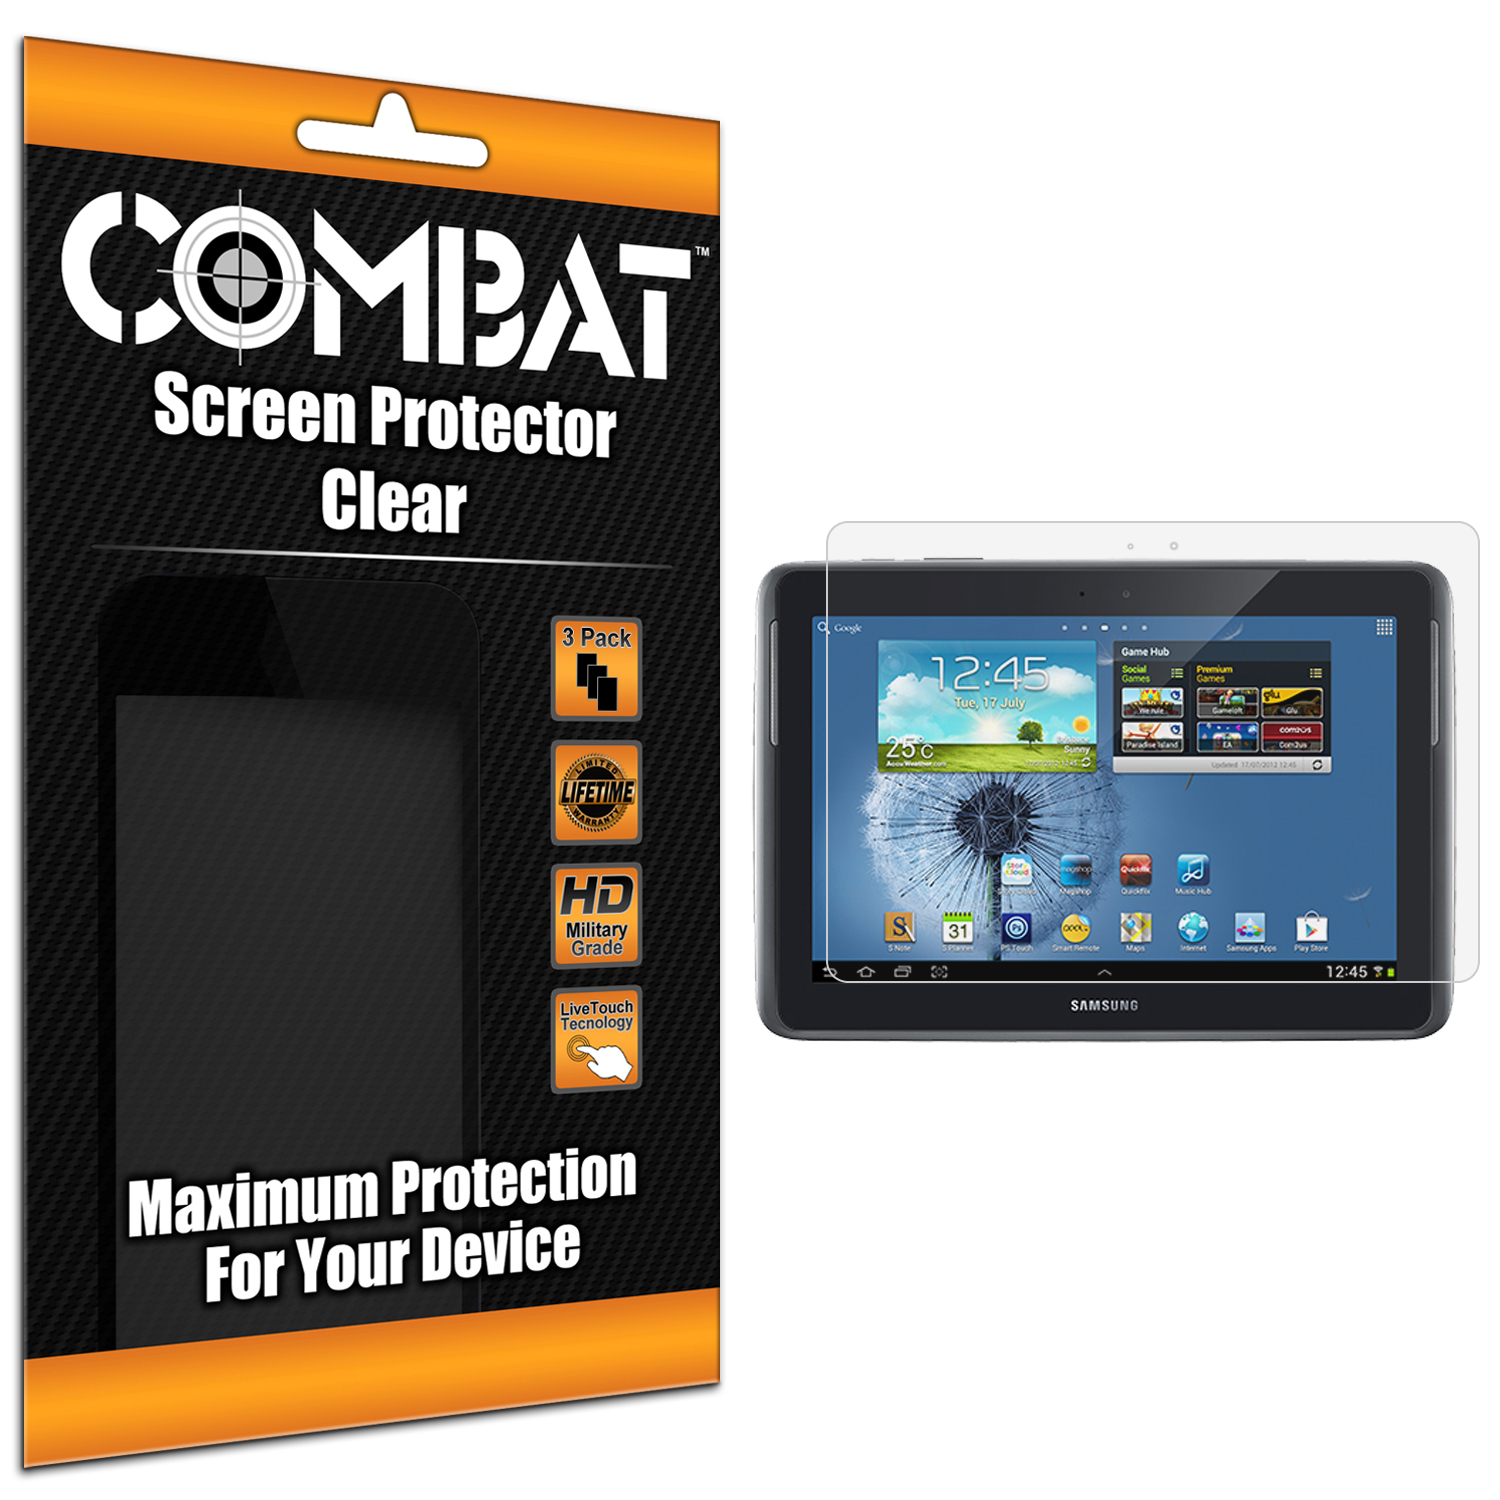 Samsung Galaxy Note 10.1 Combat 3 Pack HD Clear Screen Protector